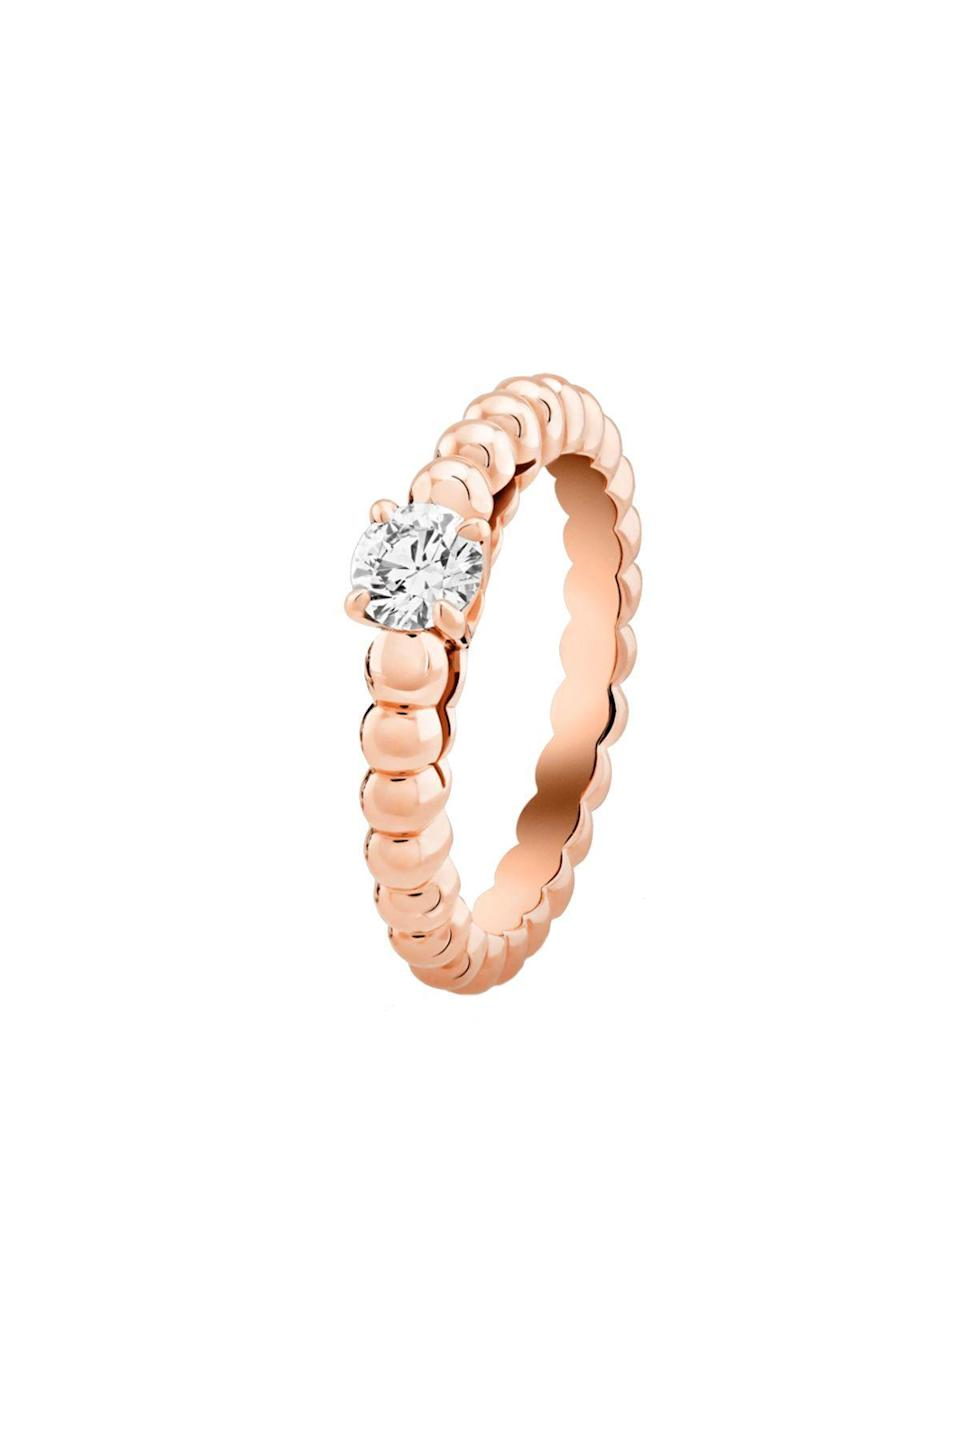 """<p><strong>Van Cleef & Arpels</strong></p><p>vancleefarpels.com</p><p><strong>$3650.00</strong></p><p><a href=""""https://go.redirectingat.com?id=74968X1596630&url=https%3A%2F%2Fwww.vancleefarpels.com%2Fus%2Fen%2Fcollections%2Fengagement%2Fengagement-rings%2Fvcaro1vc00---perlee-solitaire-rose-gold-round-diamond.html&sref=https%3A%2F%2Fwww.townandcountrymag.com%2Fstyle%2Fjewelry-and-watches%2Fg36344130%2Funique-engagement-rings-online%2F"""" rel=""""nofollow noopener"""" target=""""_blank"""" data-ylk=""""slk:Shop Now"""" class=""""link rapid-noclick-resp"""">Shop Now</a></p><p>The beaded rose gold band is handmade in Van Cleef's atelier. Choose from .3 to a 1-carat diamond diamond solitaire to top it, <em>et voilà, </em>the ring of her dreams. </p>"""